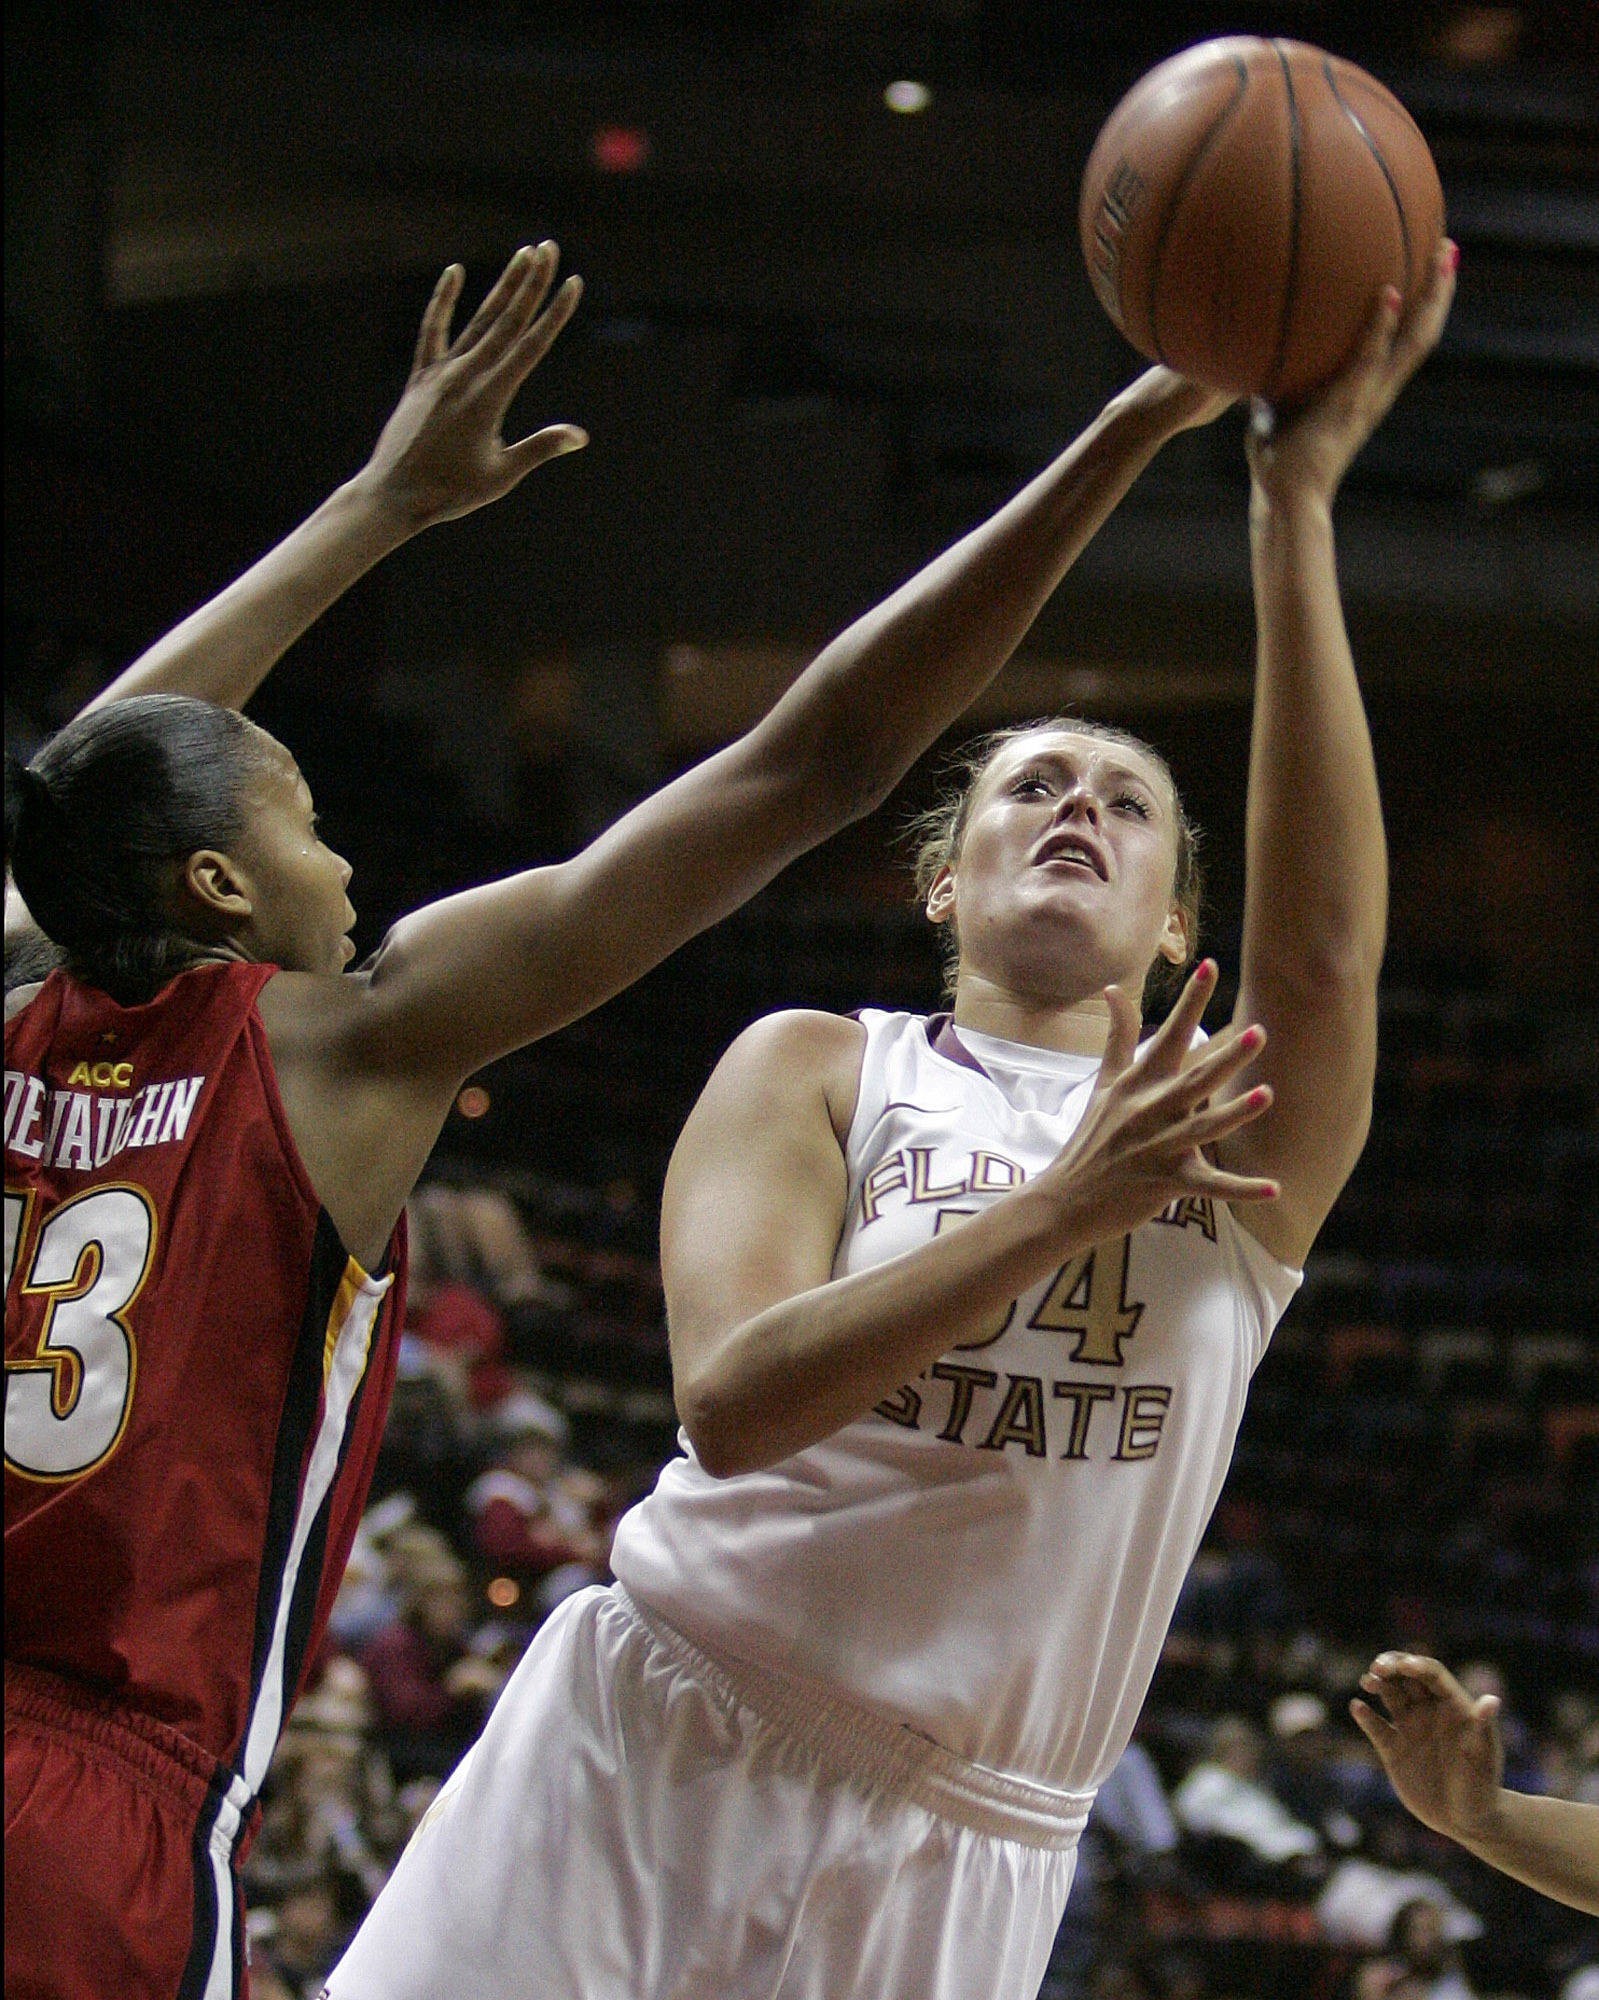 Florida State's Cierra Bravard, right, shoots against Maryland's Alicia DeVaughn in the second half of an NCAA college basketball game on Monday, Jan. 2, 2012, in Tallahassee, Fla. Maryland won 91-70. (AP Photo/Steve Cannon)